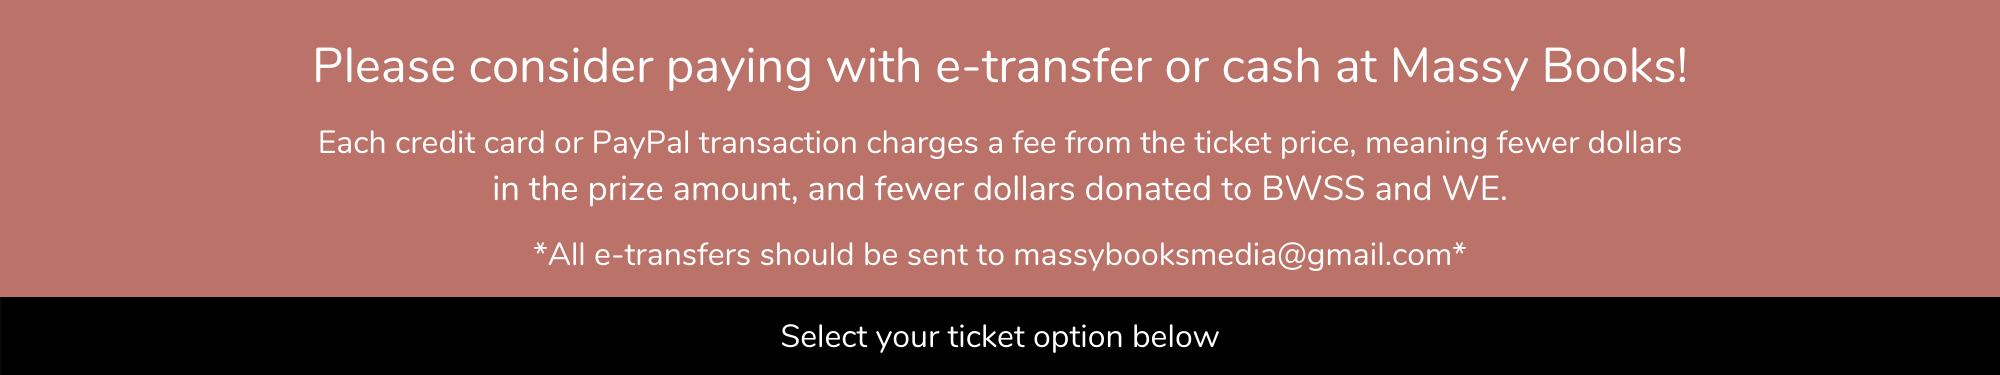 Please consider paying with E-transfer